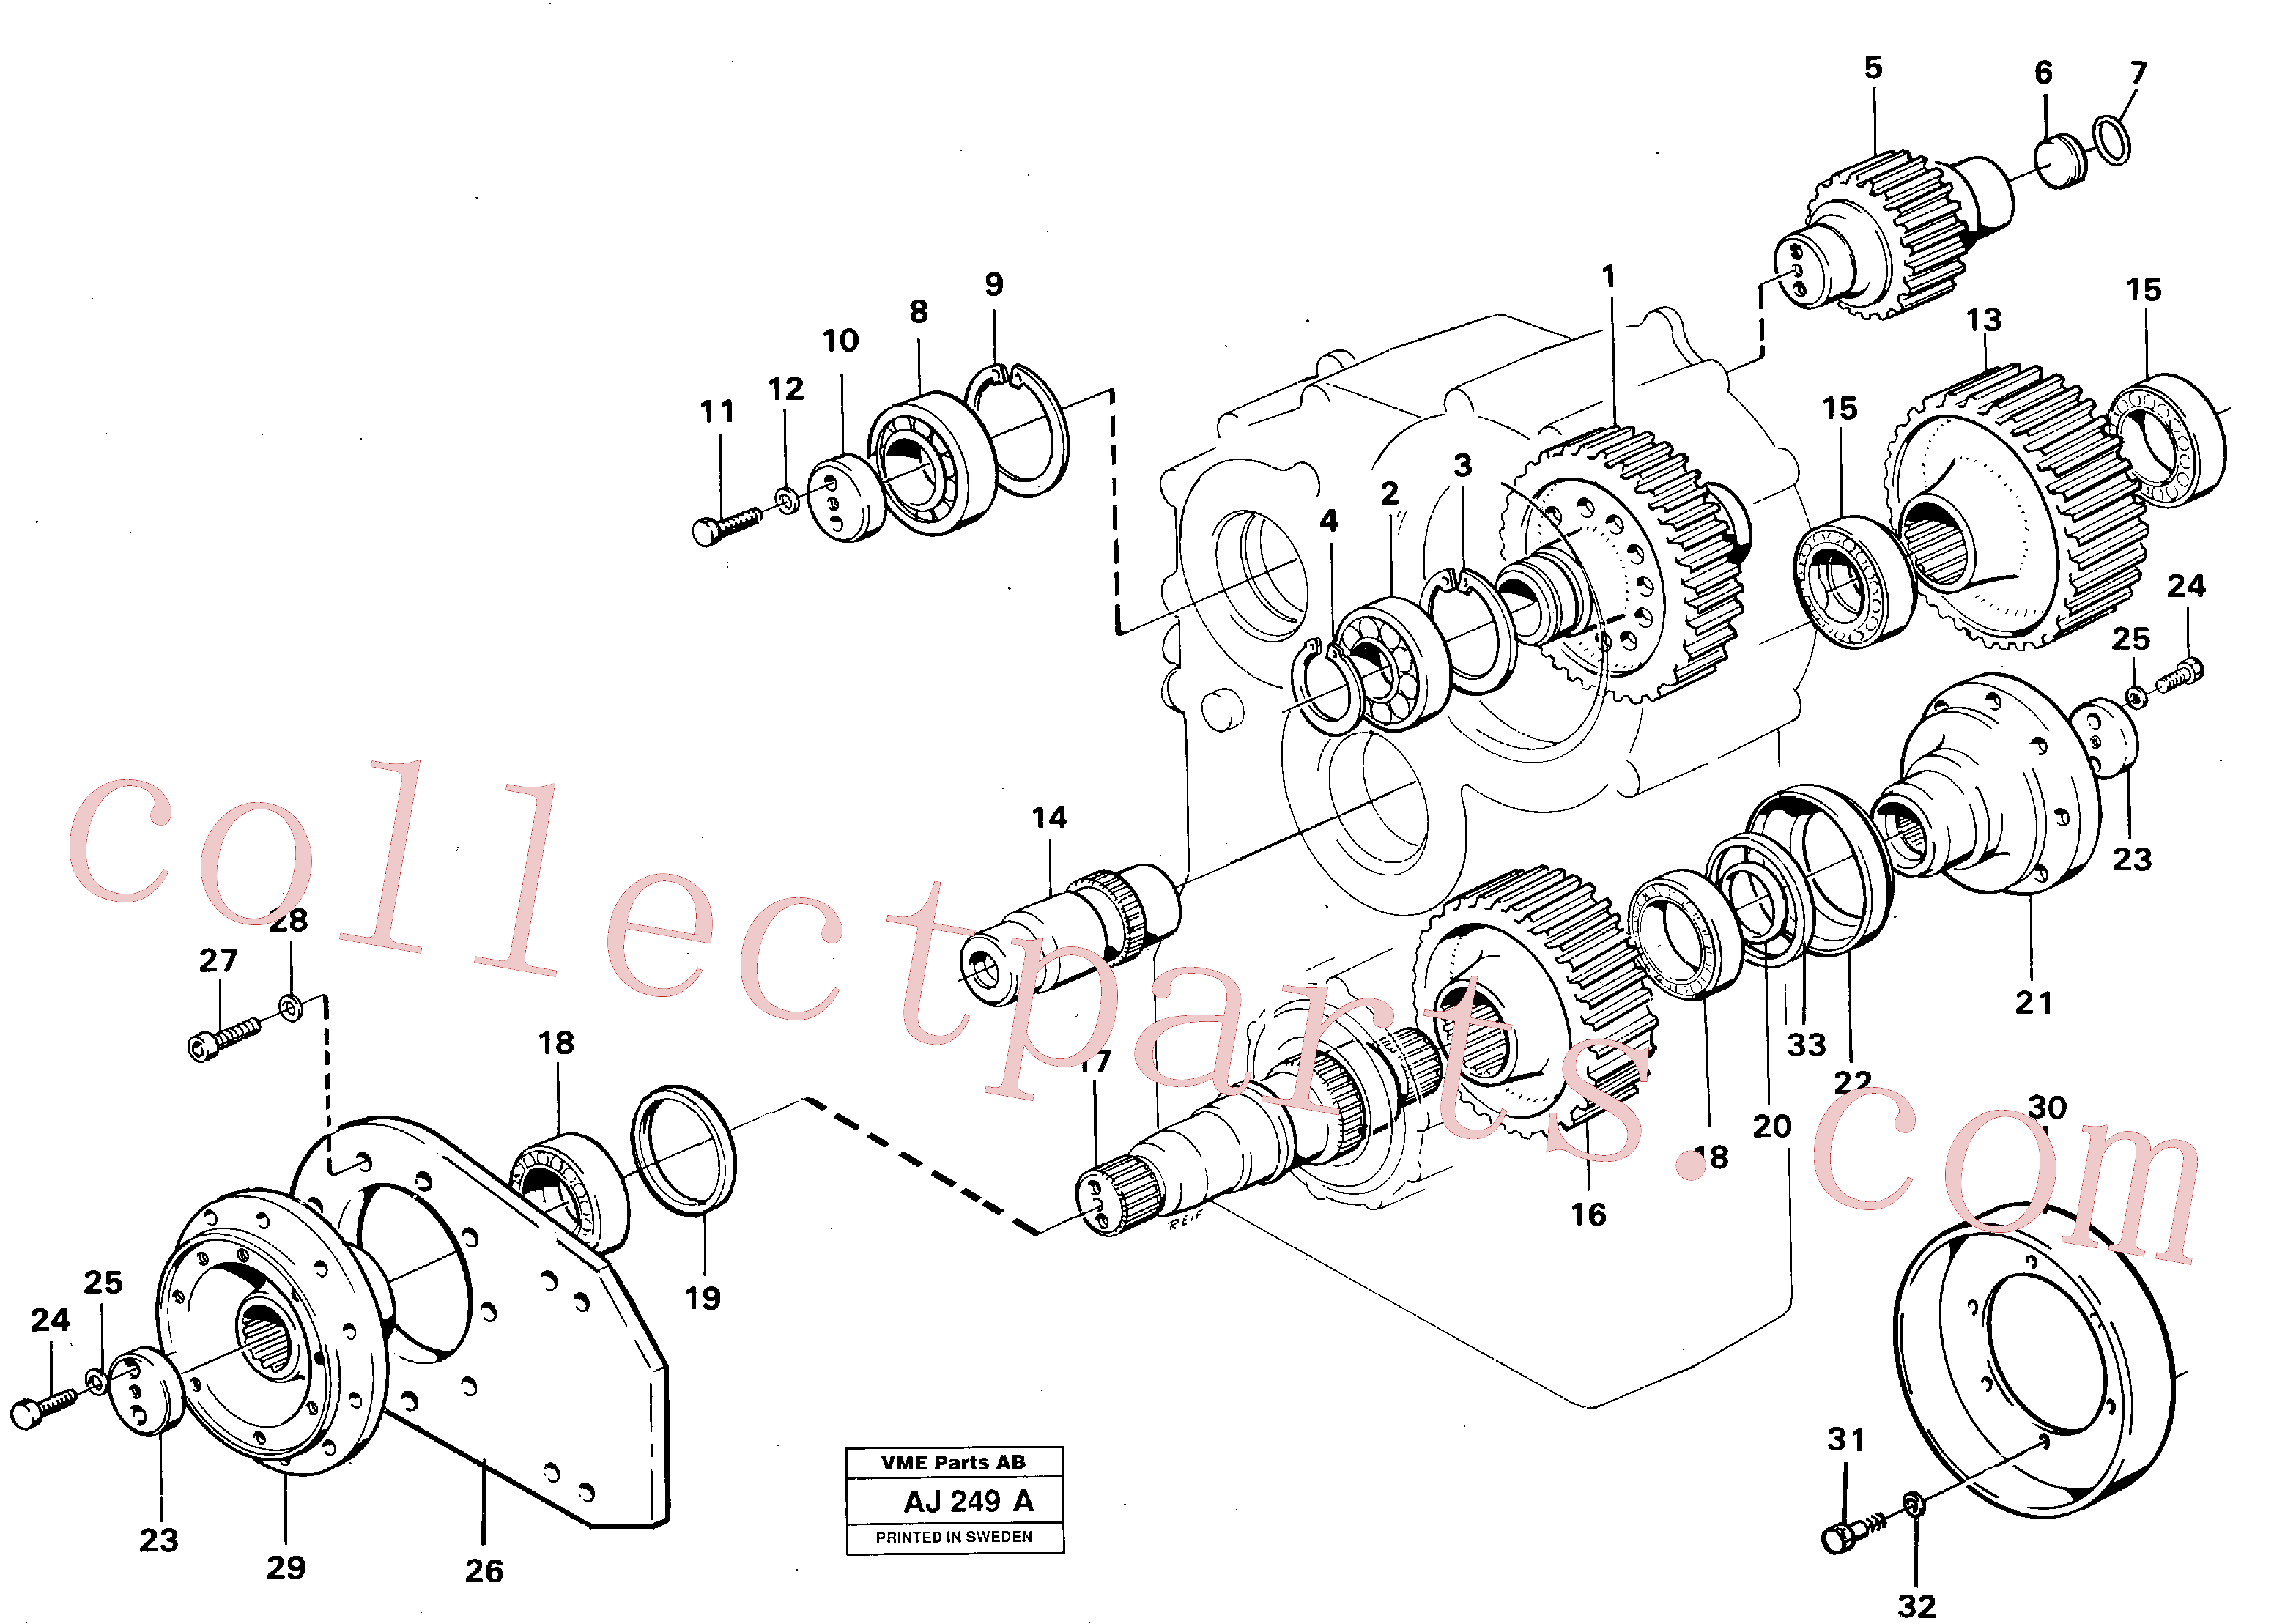 VOE914550 for Volvo Transfer gearbox gears and shafts(AJ249A assembly)